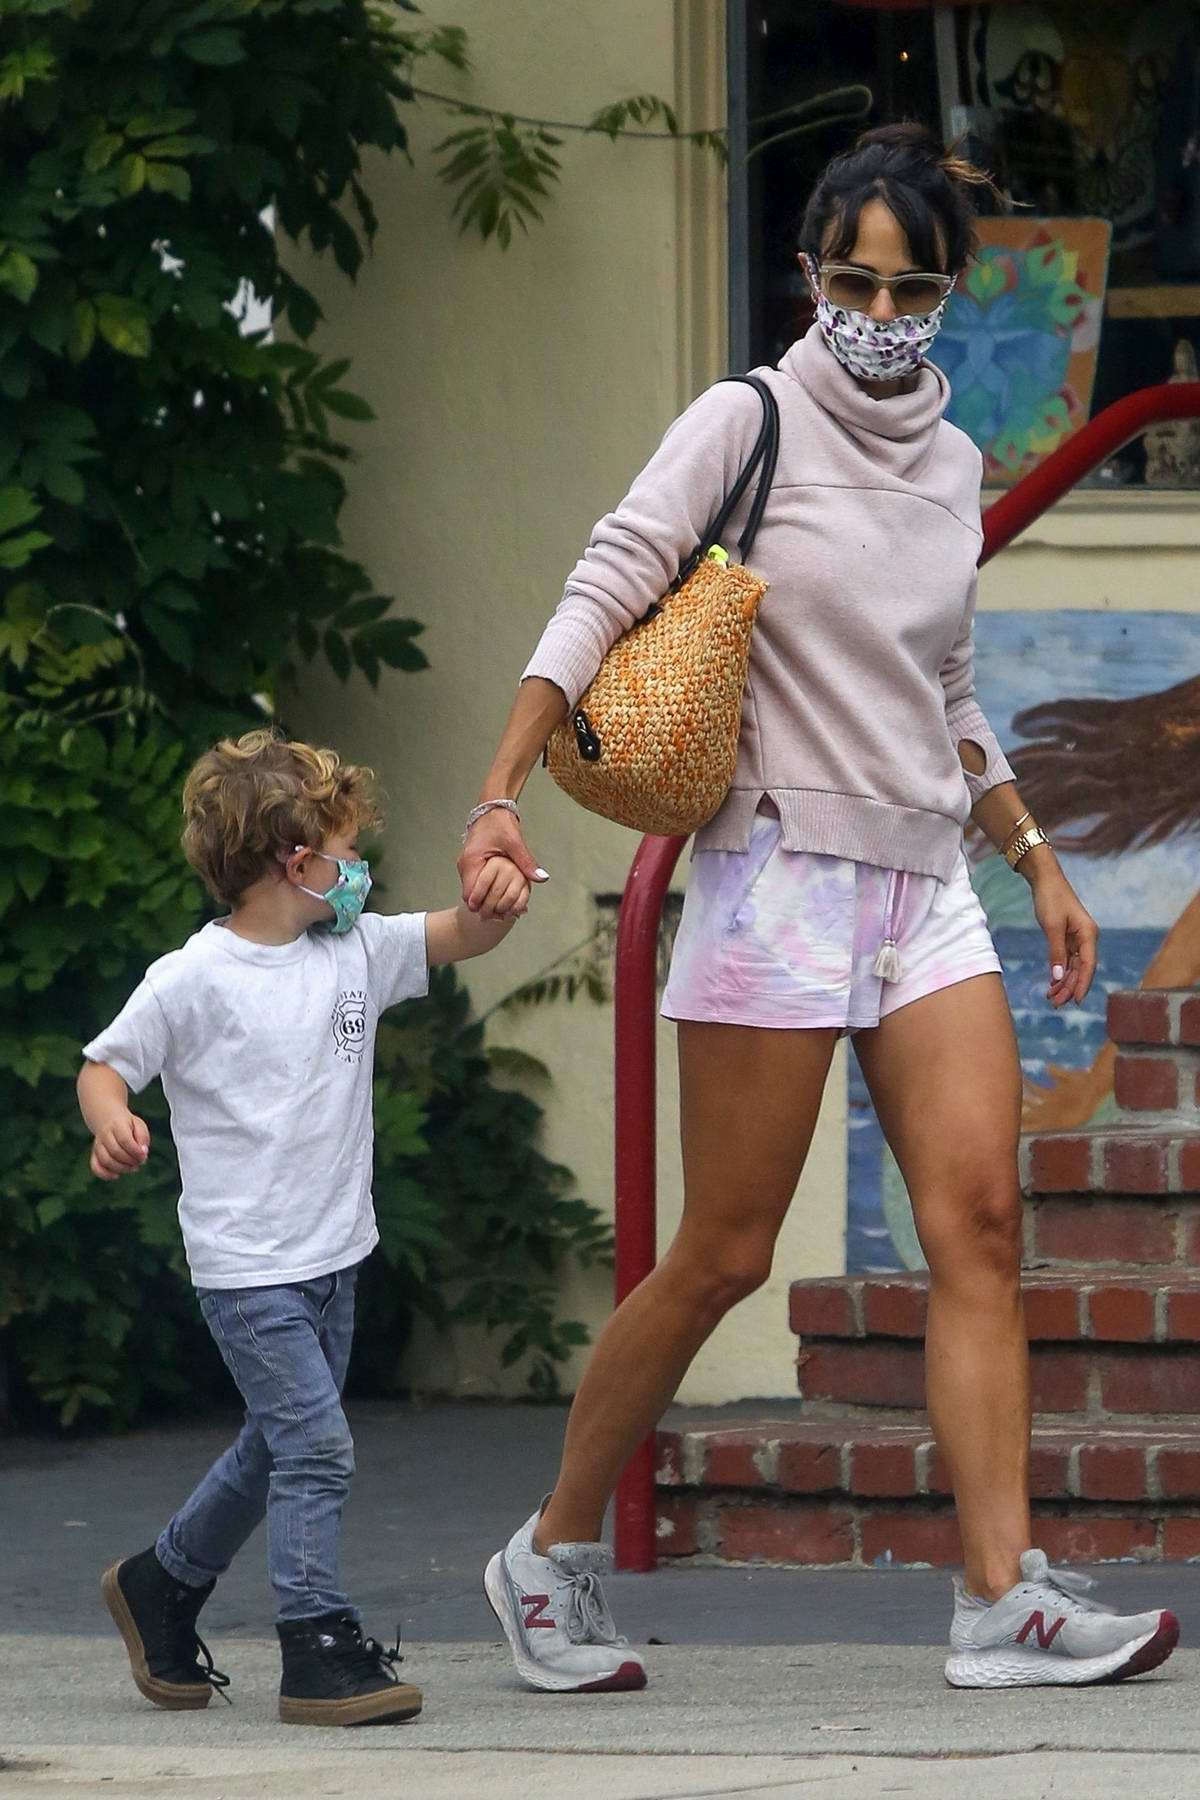 Jordana Brewster dons pink tie-dye shorts as she steps out for a morning smoothie with her son in Los Angeles